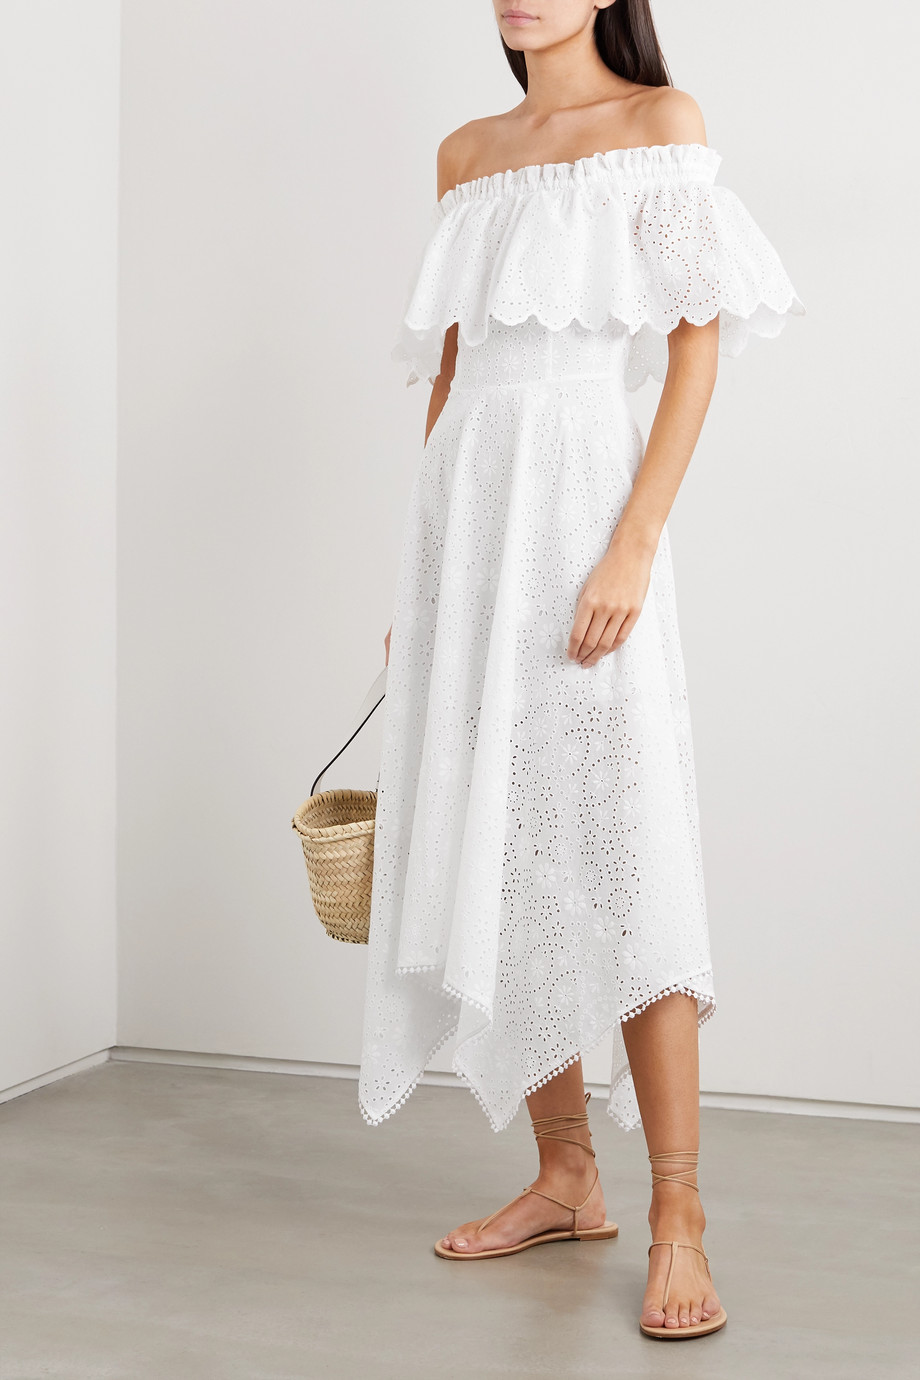 Charo Ruiz Khadi asymmetric off-the-shoulder broderie anglaise cotton-blend midi dress